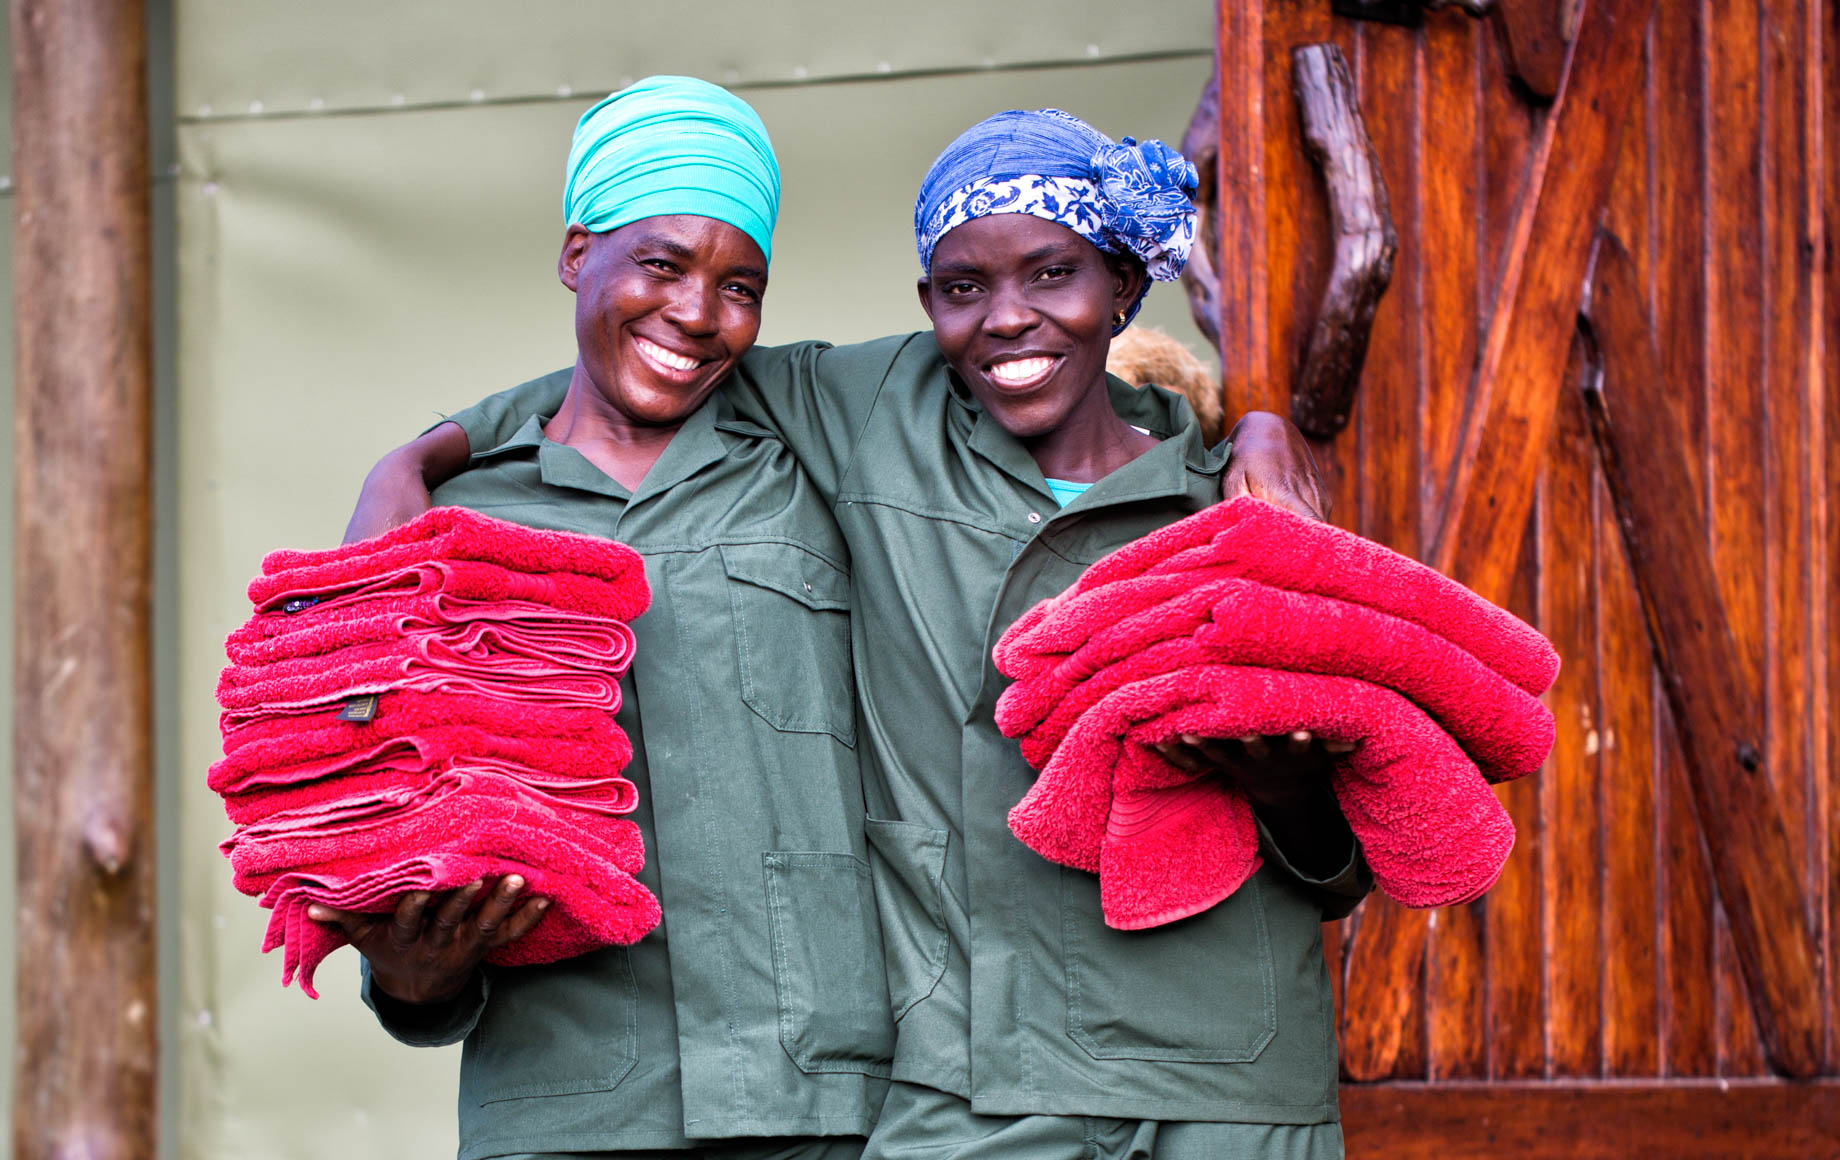 Mapula Lodge staff hold stacks of red towels